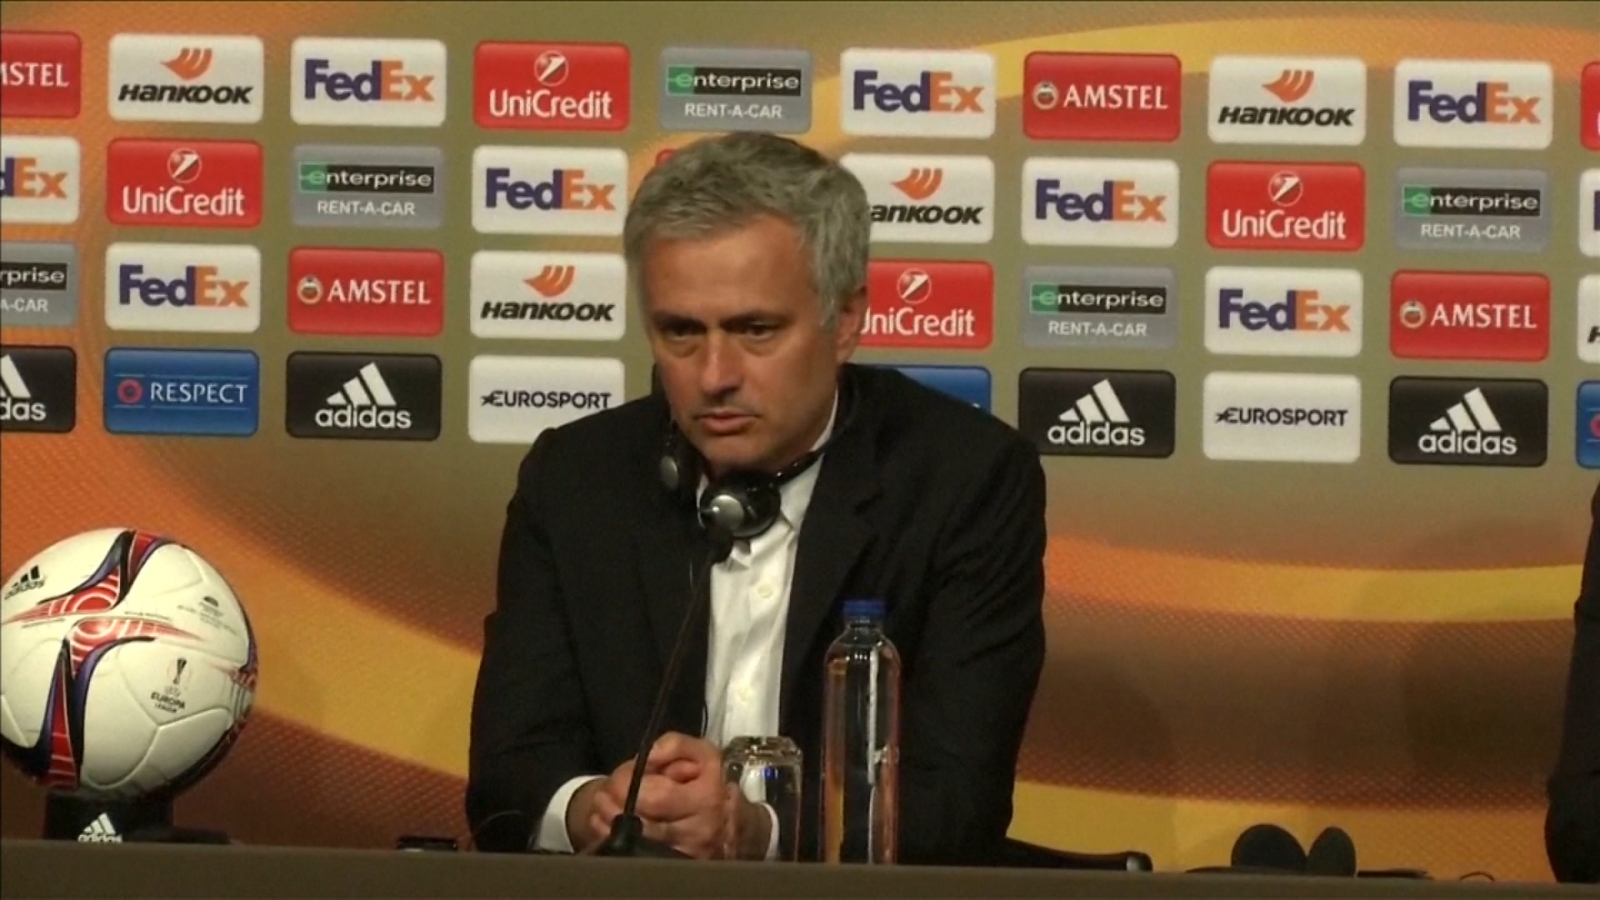 jose-mourinho-and-ander-herrera-speak-out-about-manchester-attack-after-europa-league-triumph